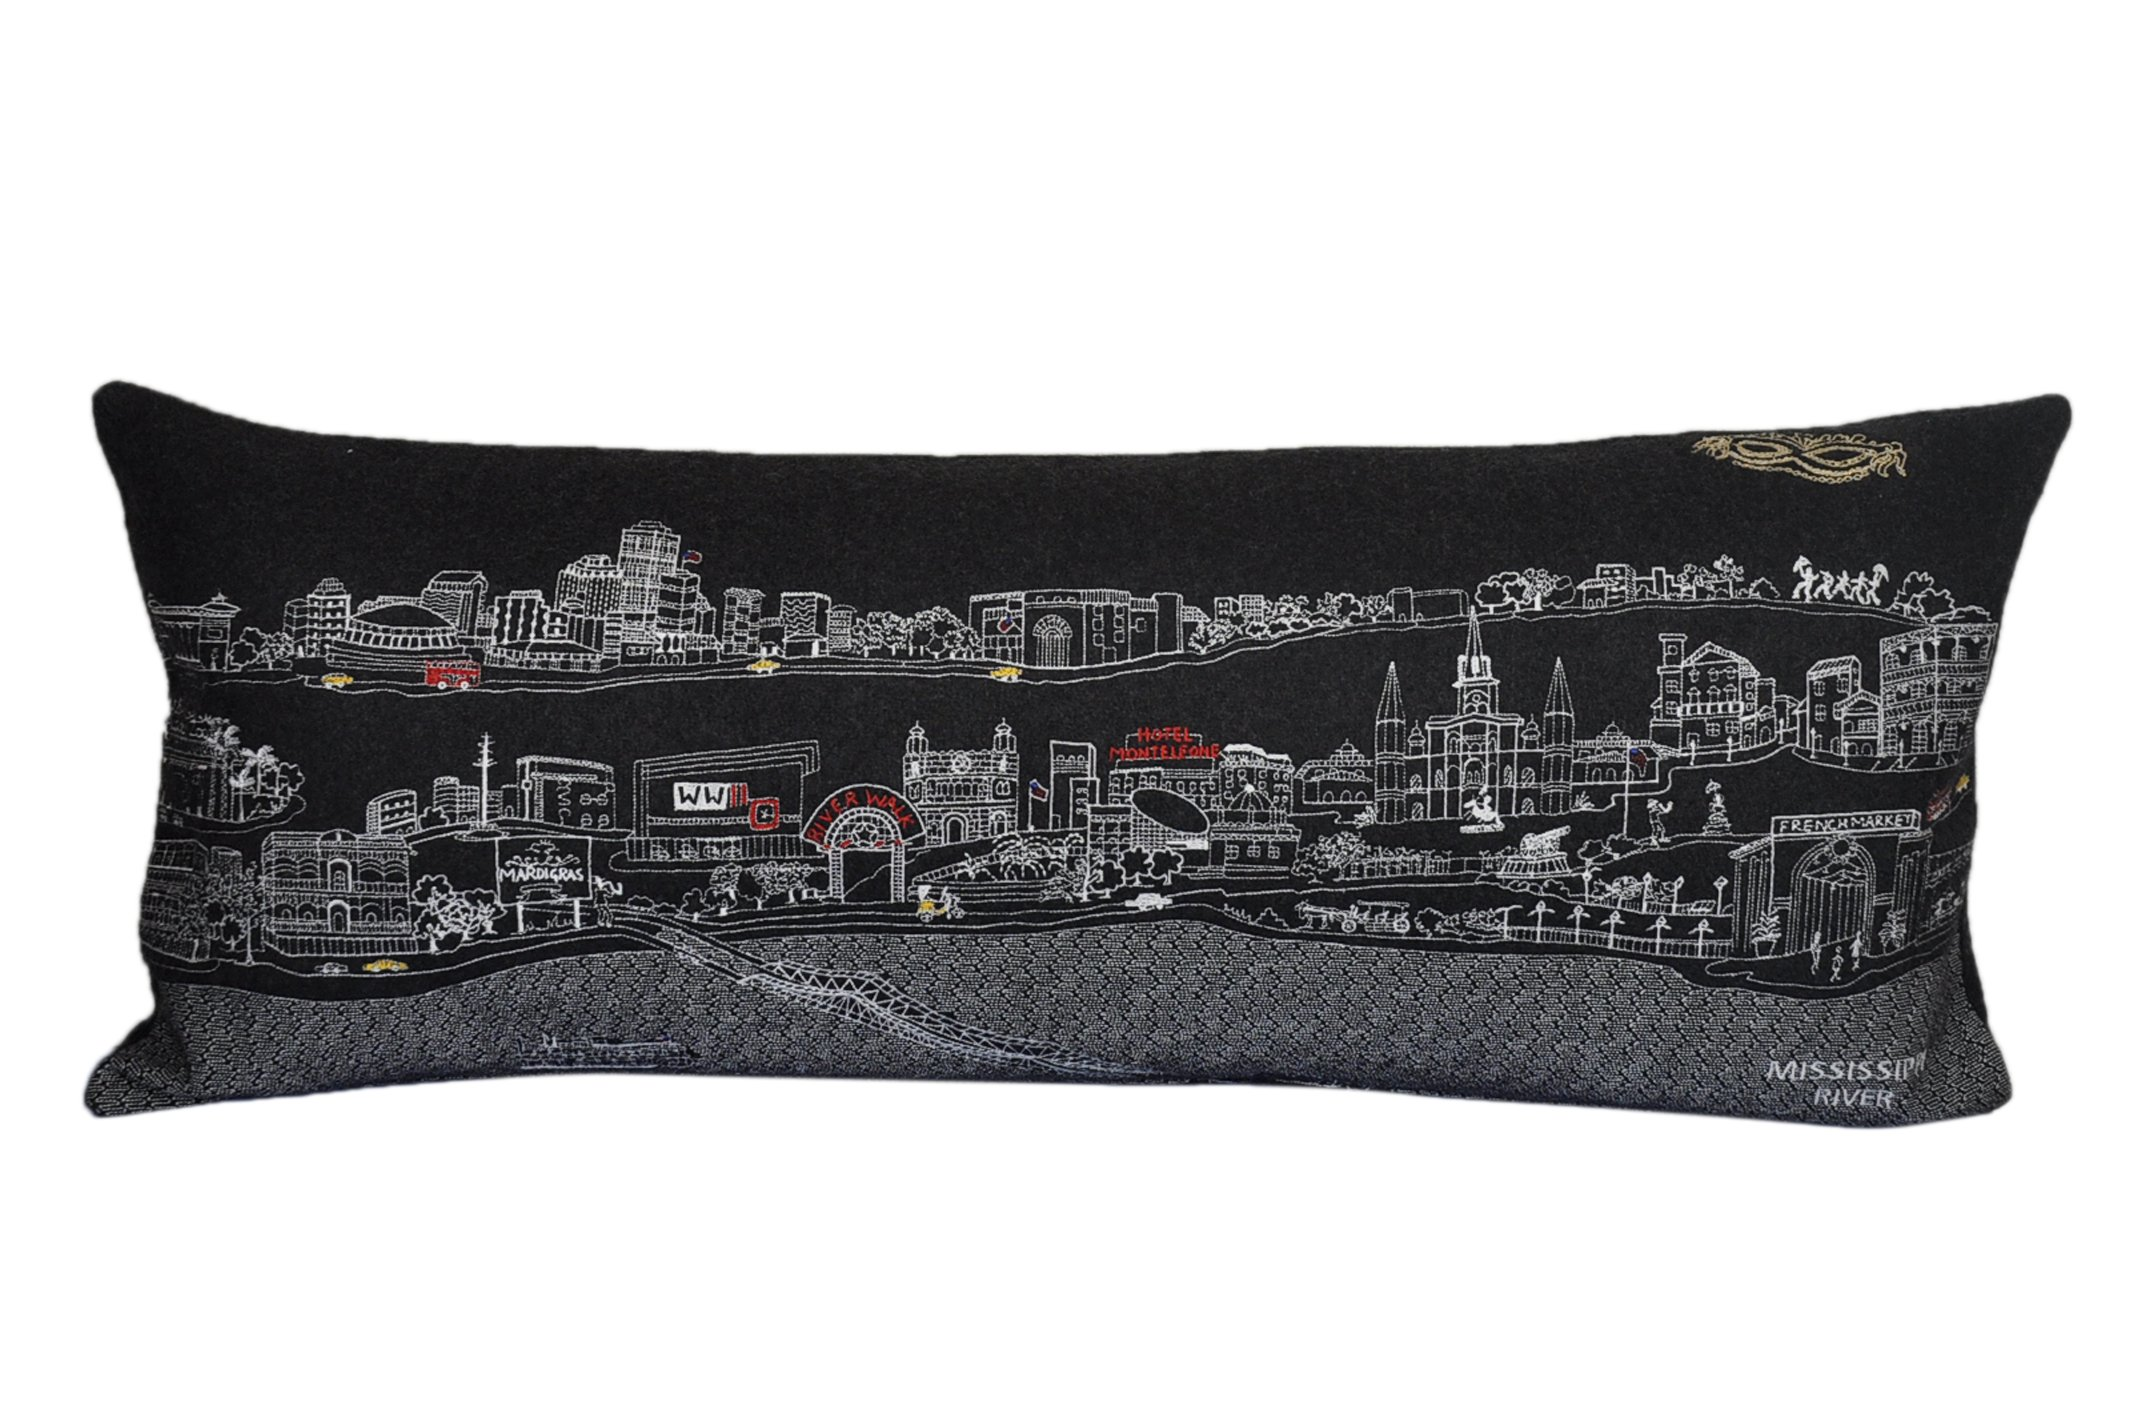 Beyond Cushions Polyester Throw Pillows Beyond Cushions New Orleans Night Skyline Queen Size Embroidered Accent Pillow 35 X 14 X 5 Inches Black Model # NOL-NGT-QUN